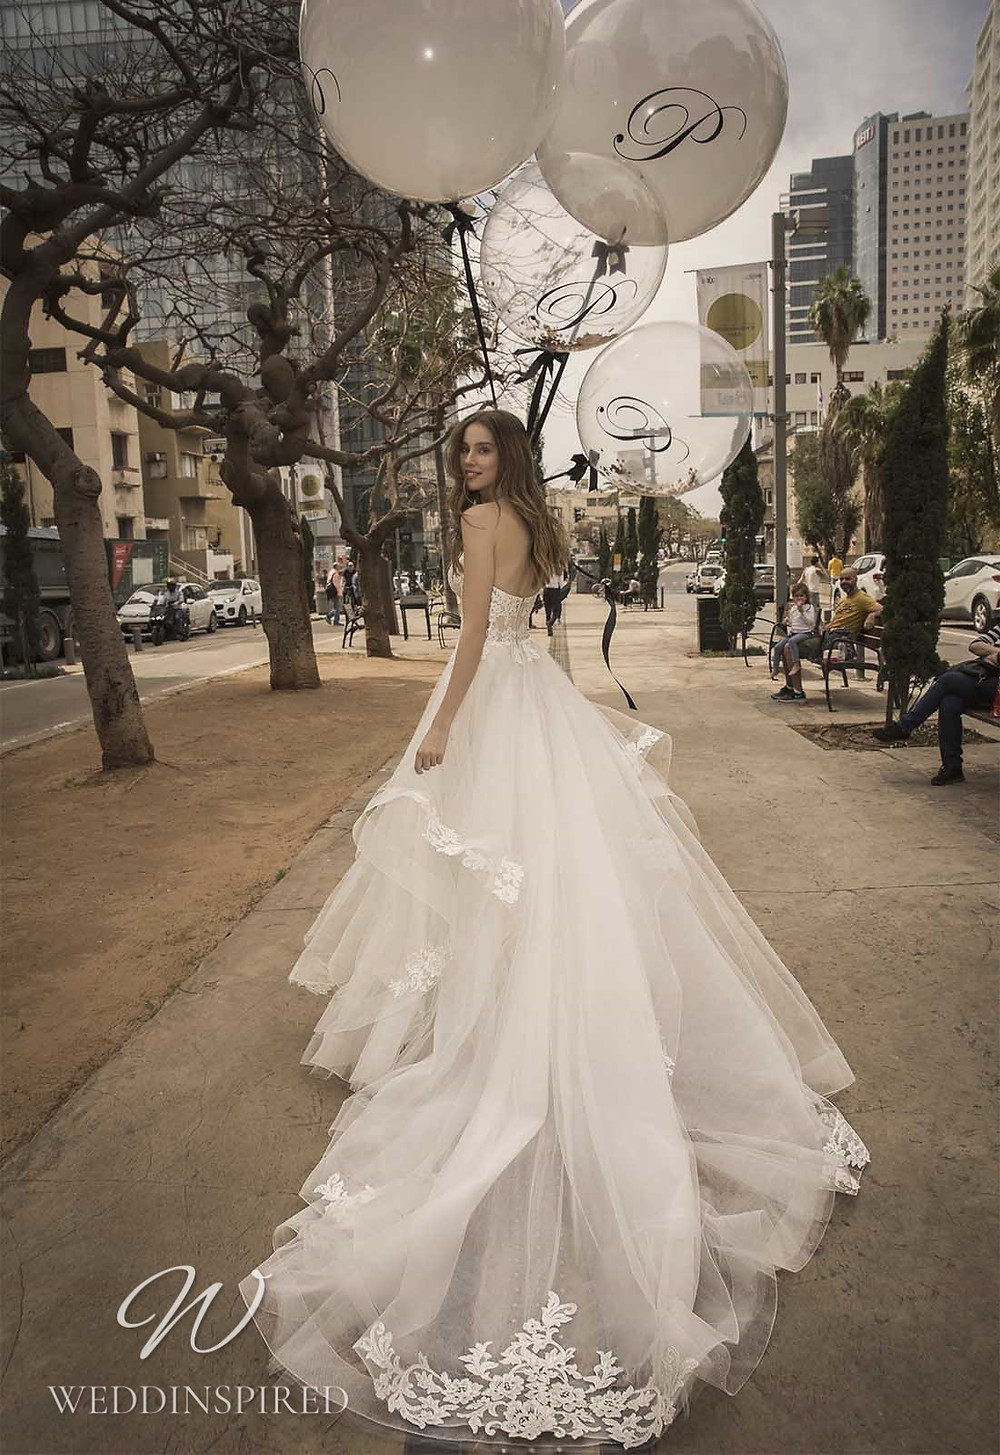 A Pnina Tornai 2021 strapless lace and tulle A-line wedding dress